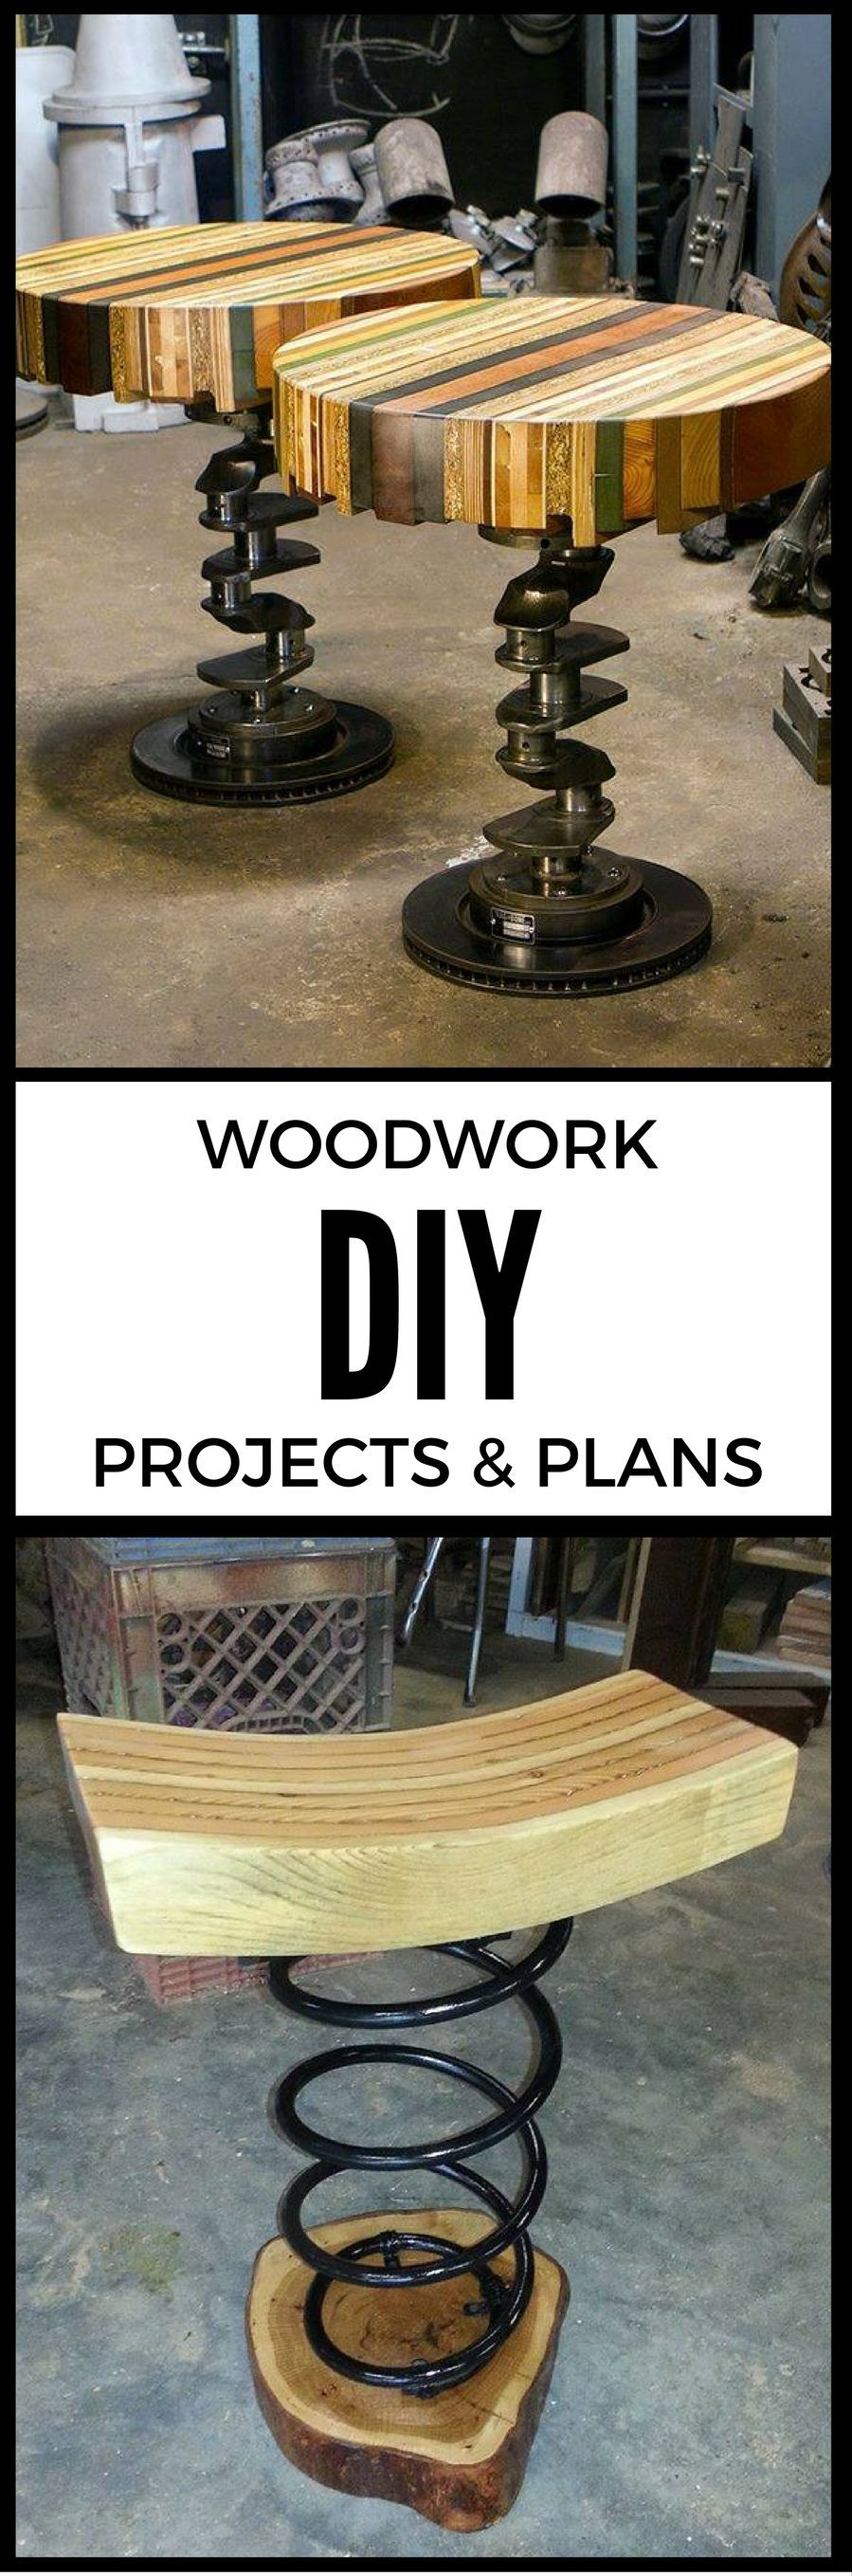 Woodworking plans projects and ideas httpvidagedcums diy woodworking projects do it yourself diy garage makeover ideas include storage organization shelves and project plans for cool new garage decor solutioingenieria Images